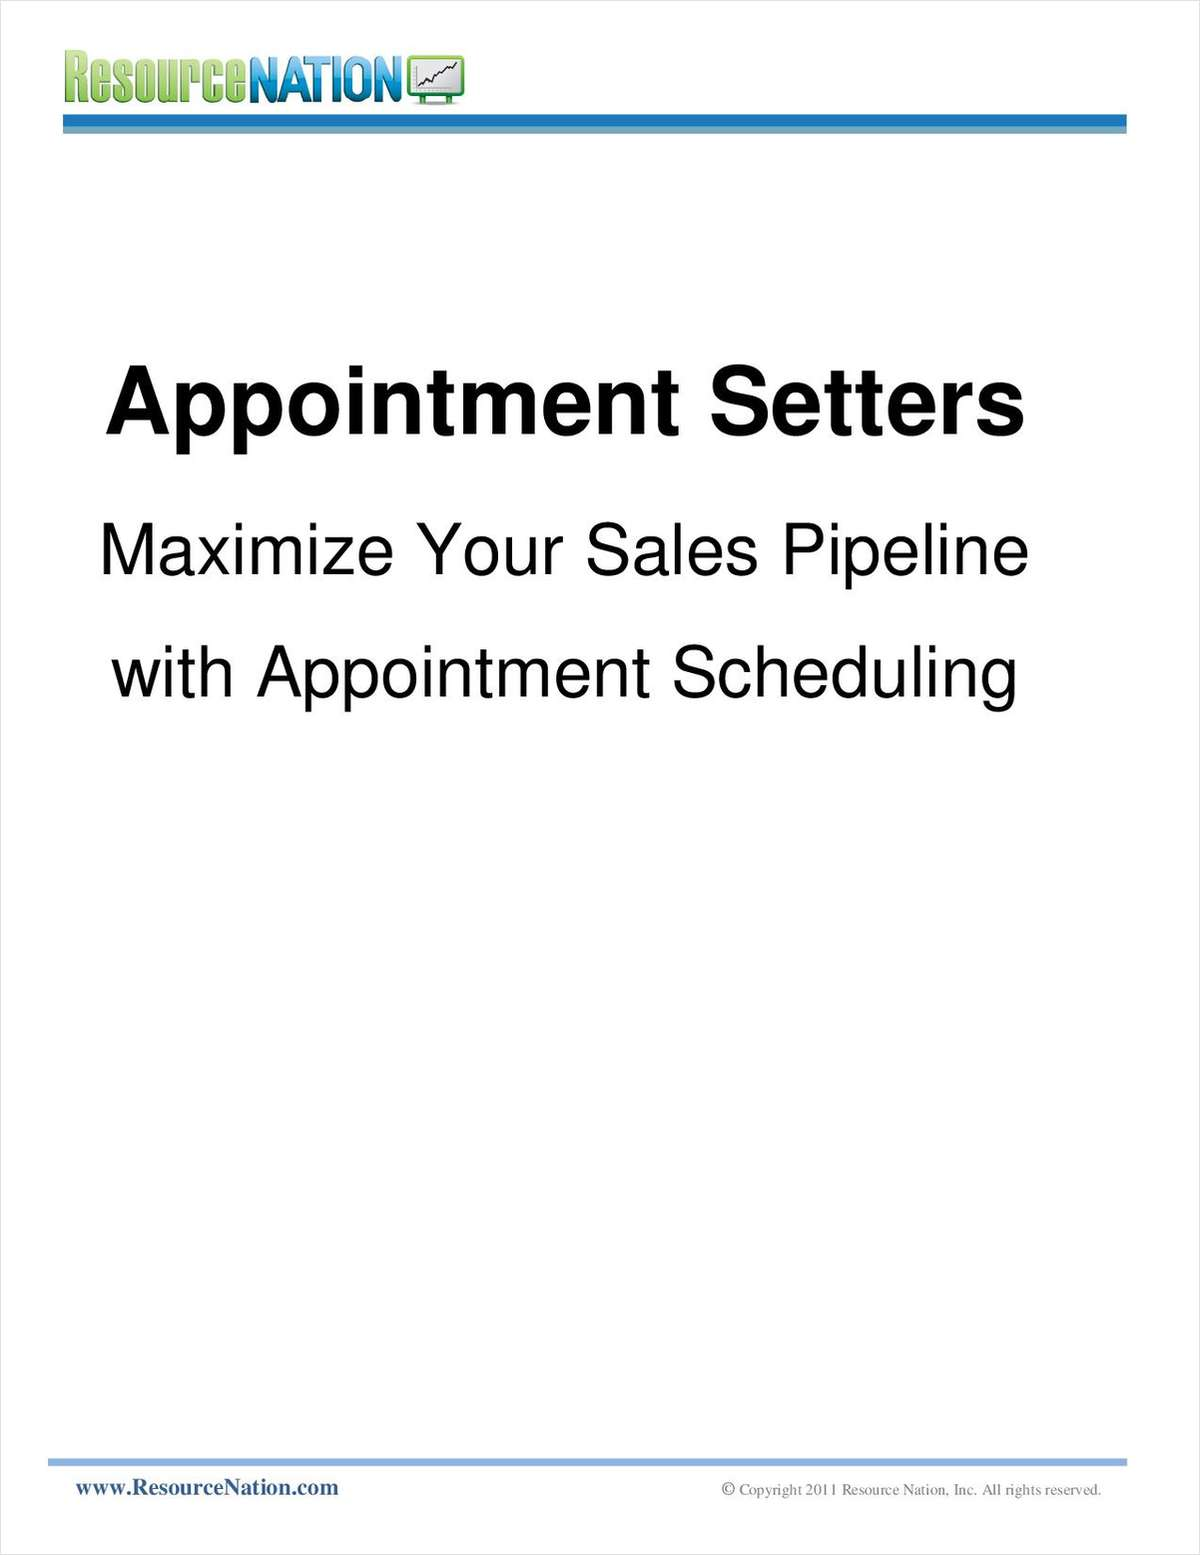 Maximize Your Sales Pipeline with an Appointment Scheduling Service